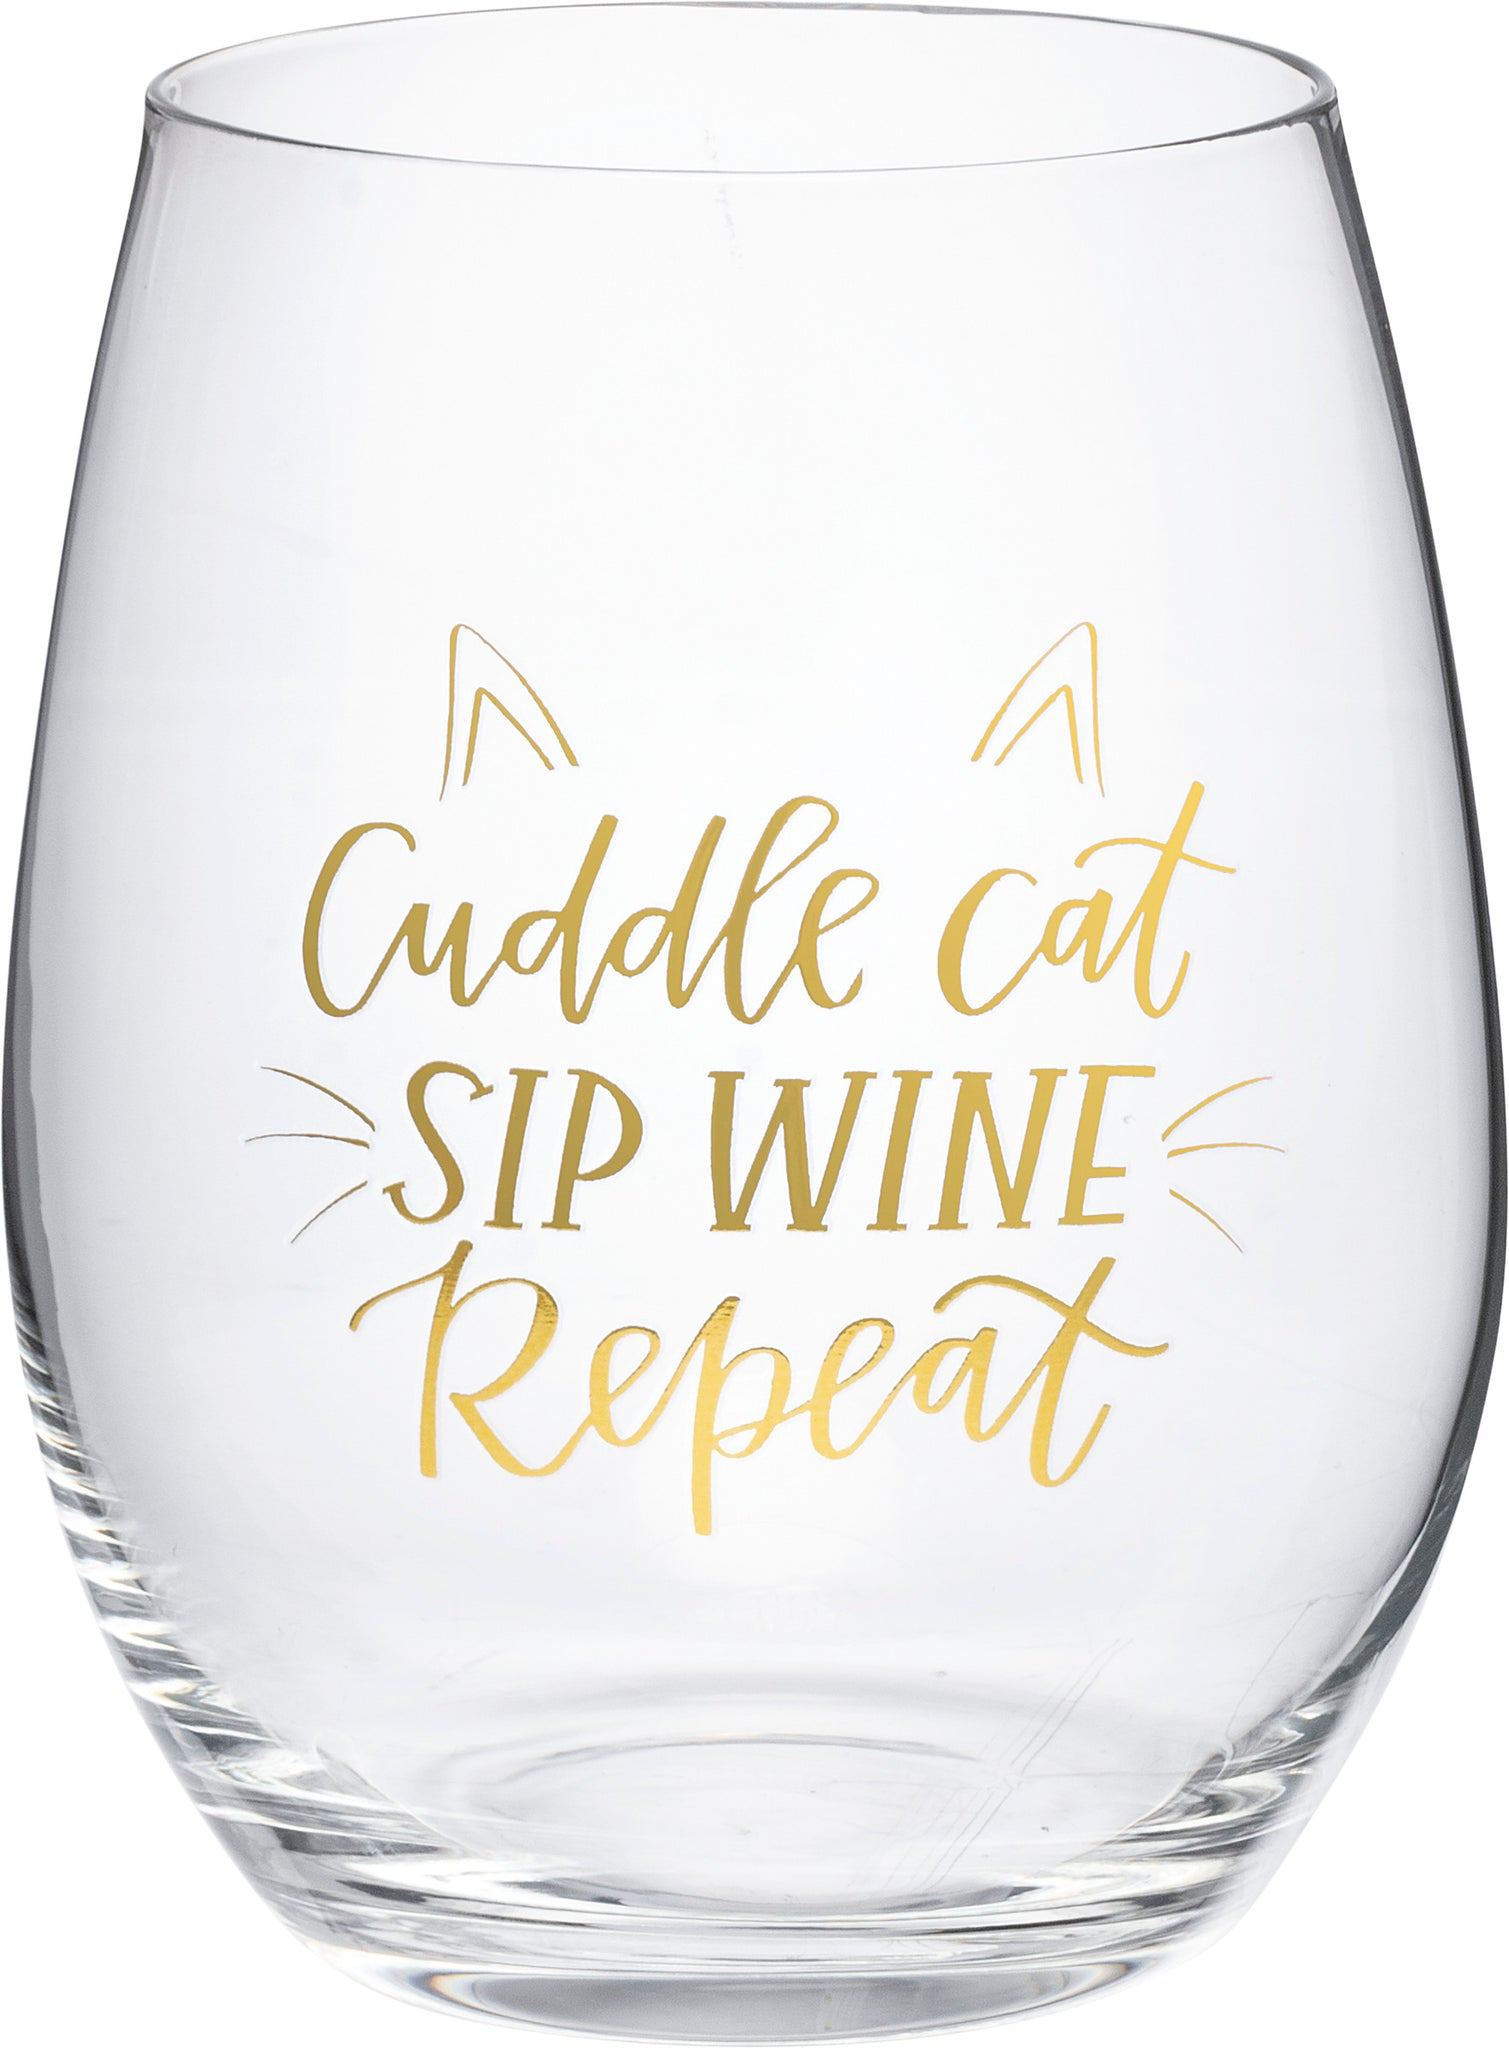 Wine Glass - Cuddle Cat